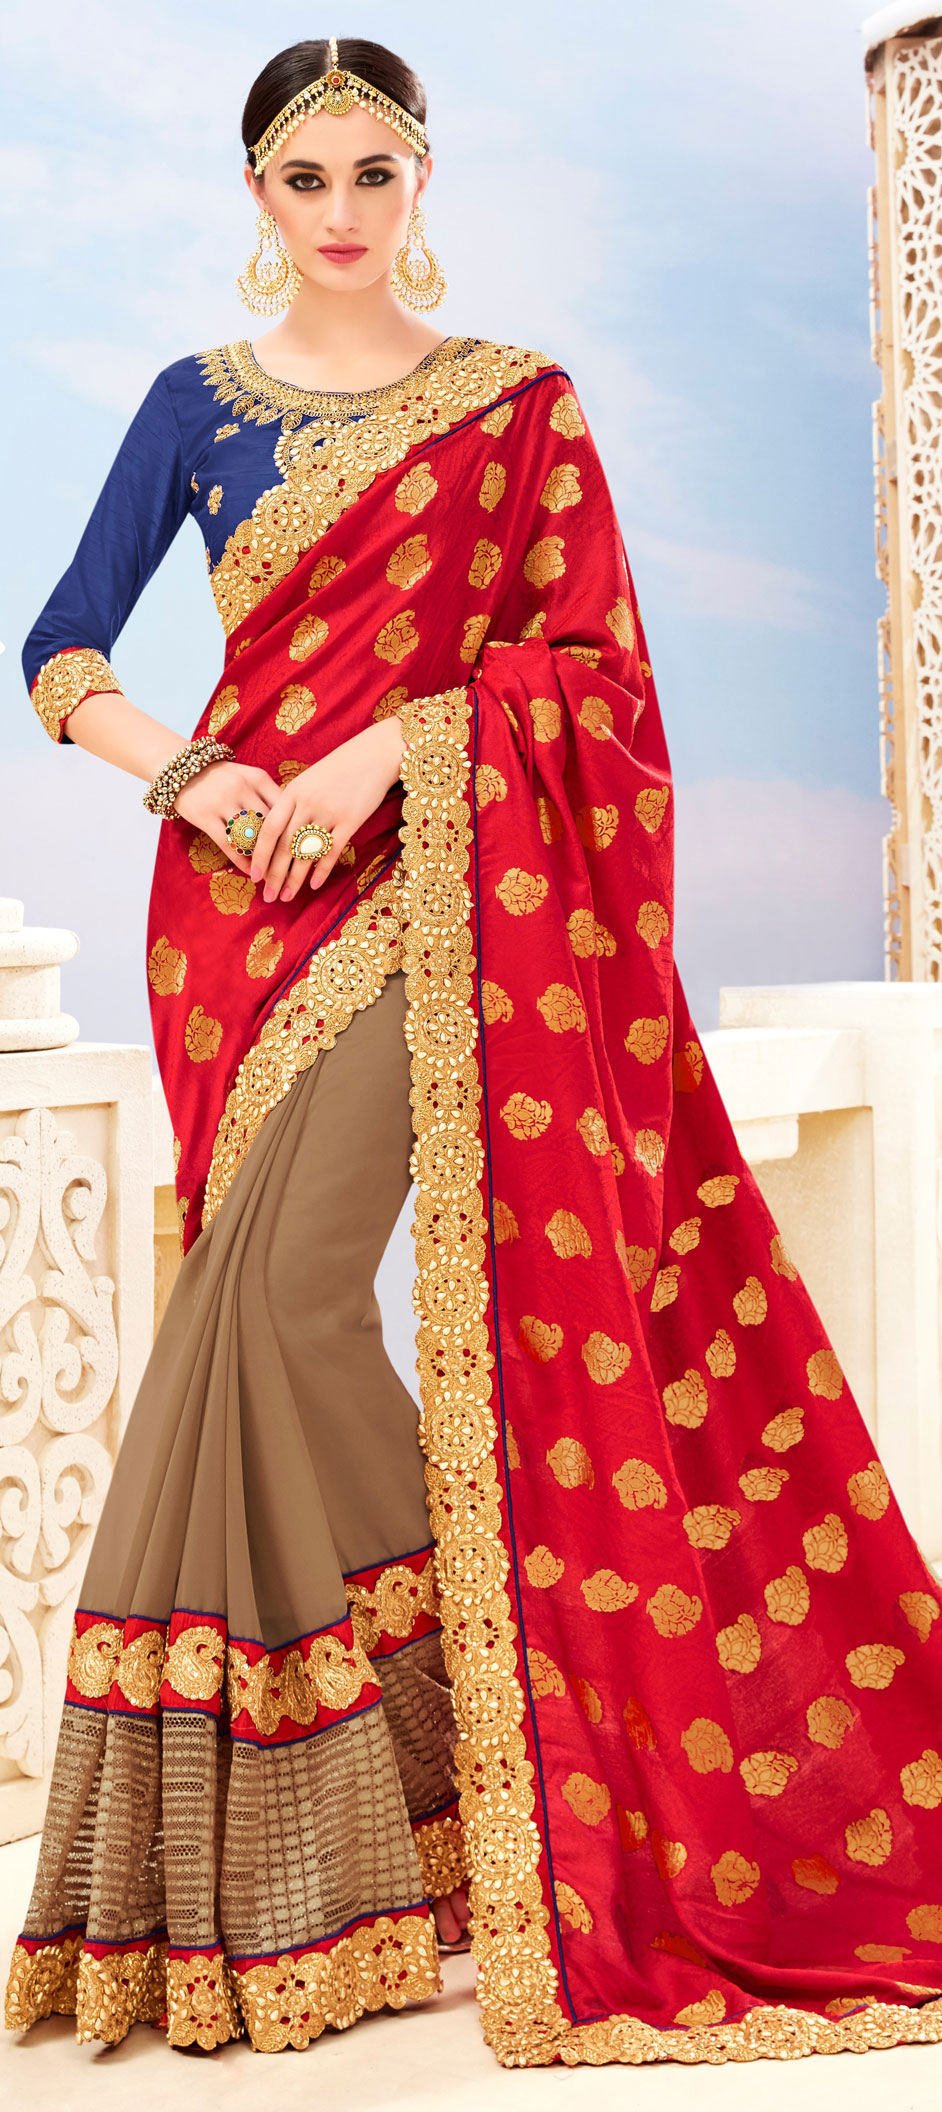 747245: Beige and Brown, Red and Maroon color family Embroidered ...